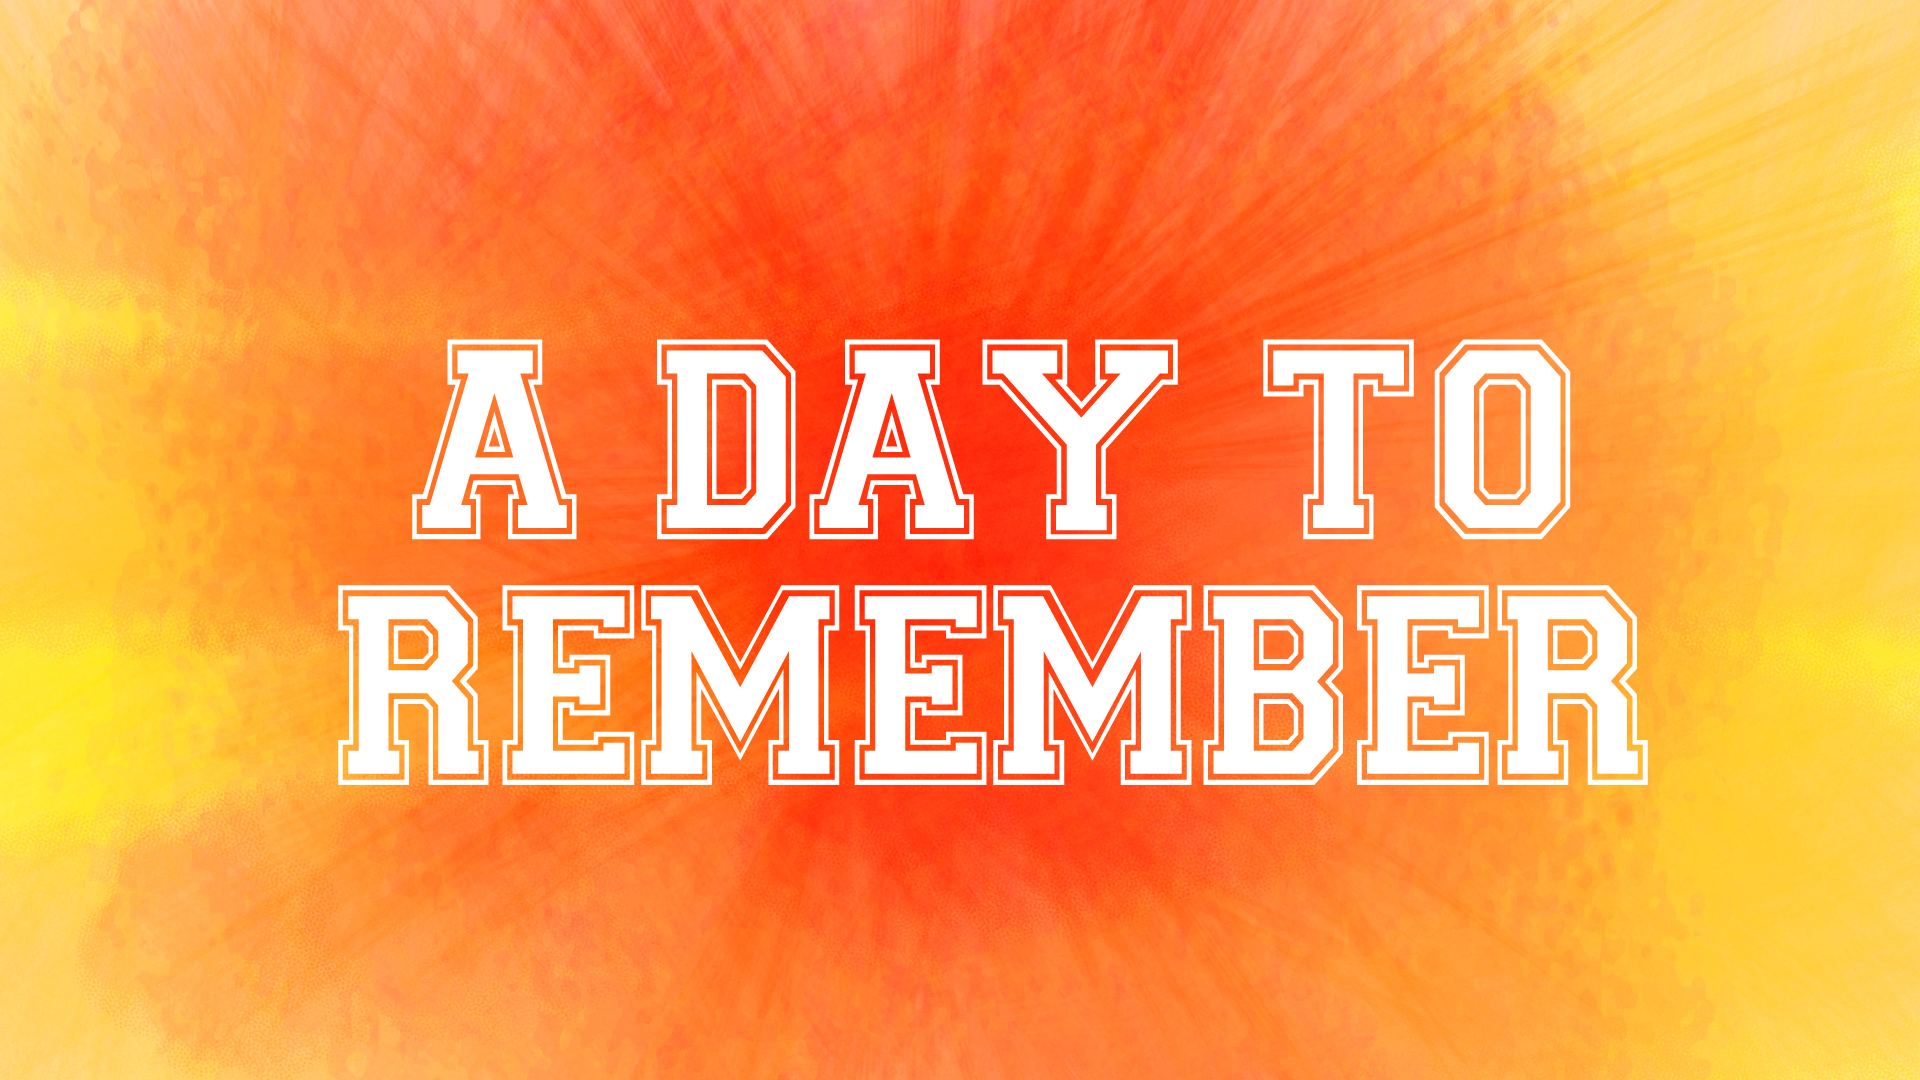 A Day To Remember Wallpaper by MetalSlasher 1920x1080